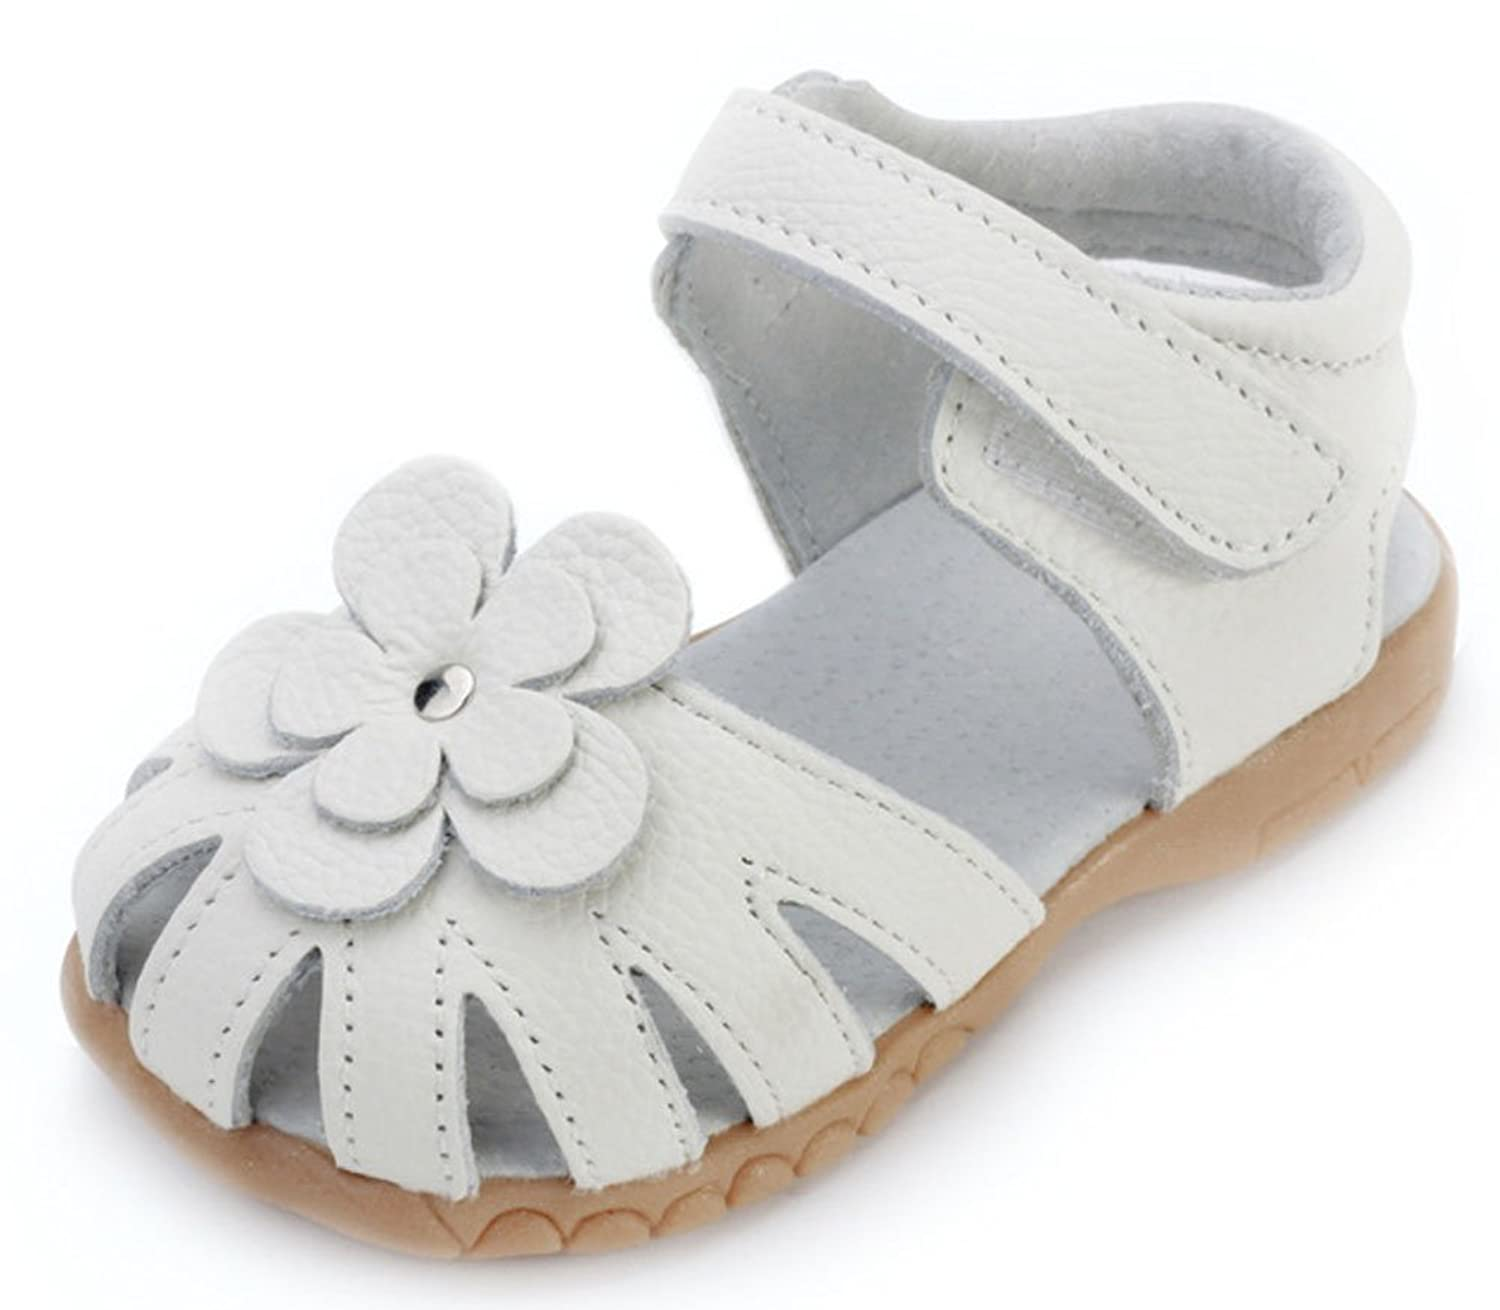 Femizee Girls Genuine Leather Soft Closed Toe Princess Flat Shoes Summer Sandals(Toddler/Little Kid)